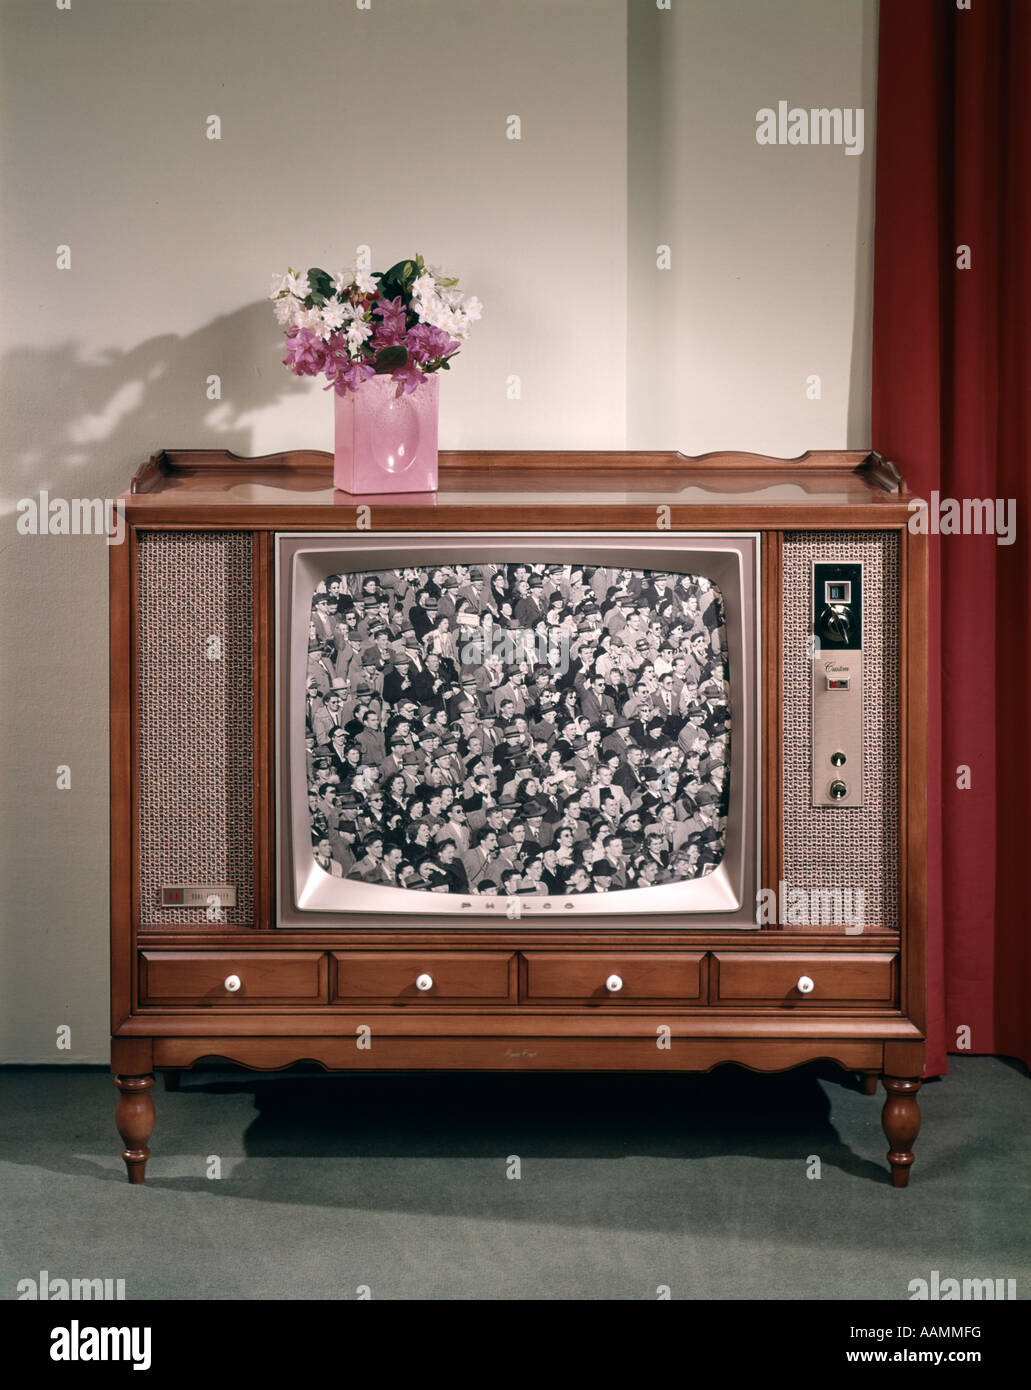 1960s LARGE CONSOLE TELEVISION WITH BLACK AND WHITE SCREEN IMAGE AND VASE OF FLOWERS ON TOP NOSTALGIA - Stock Image